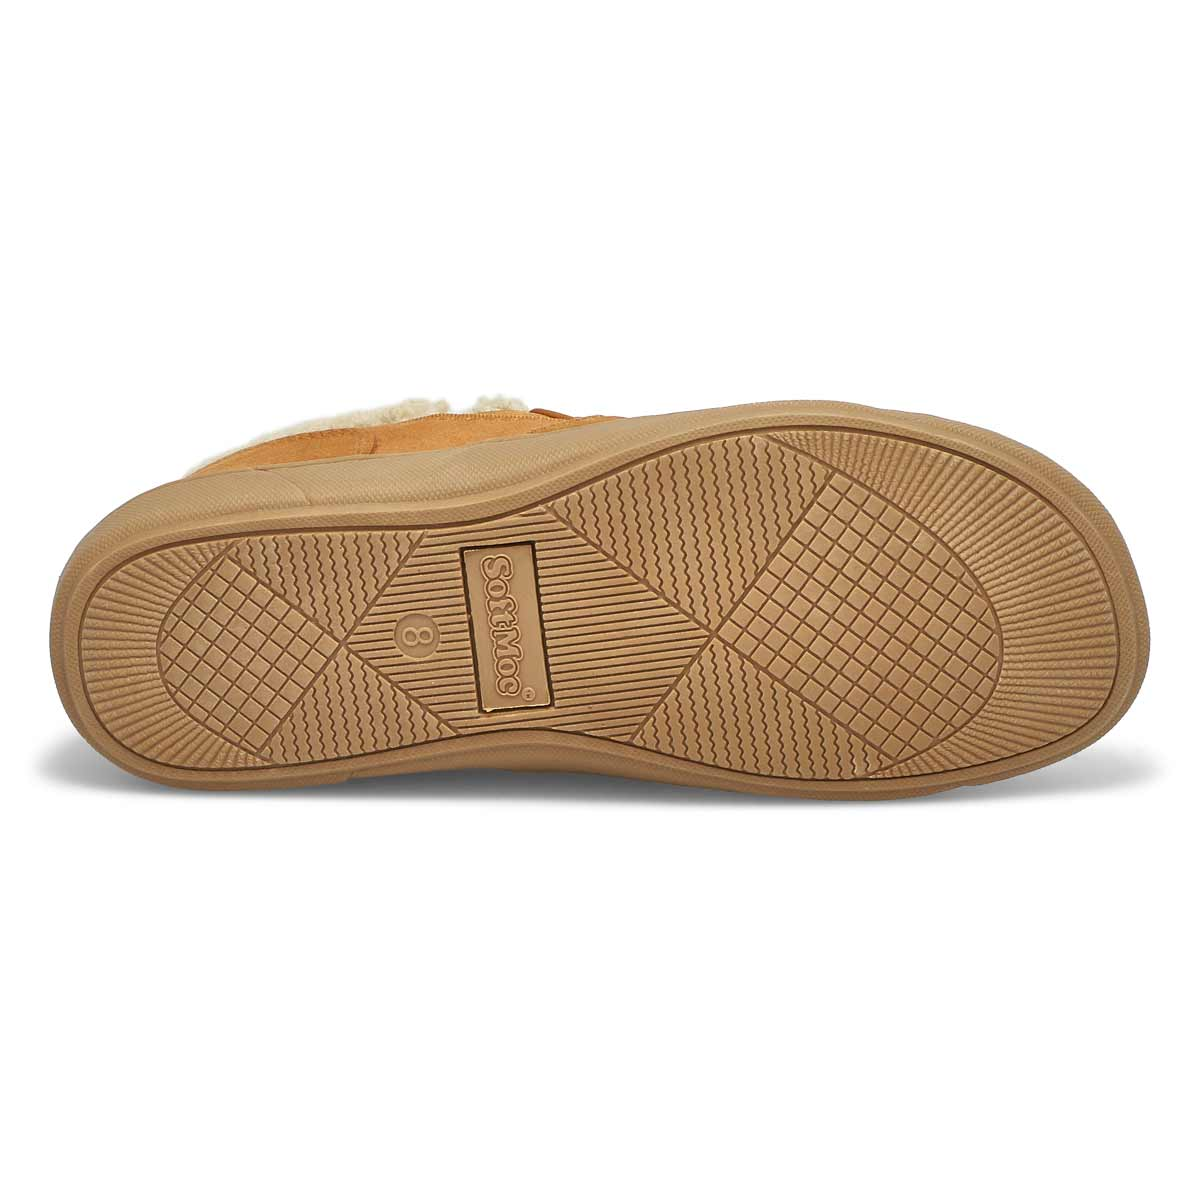 Mns Repete spice memory foam slipper